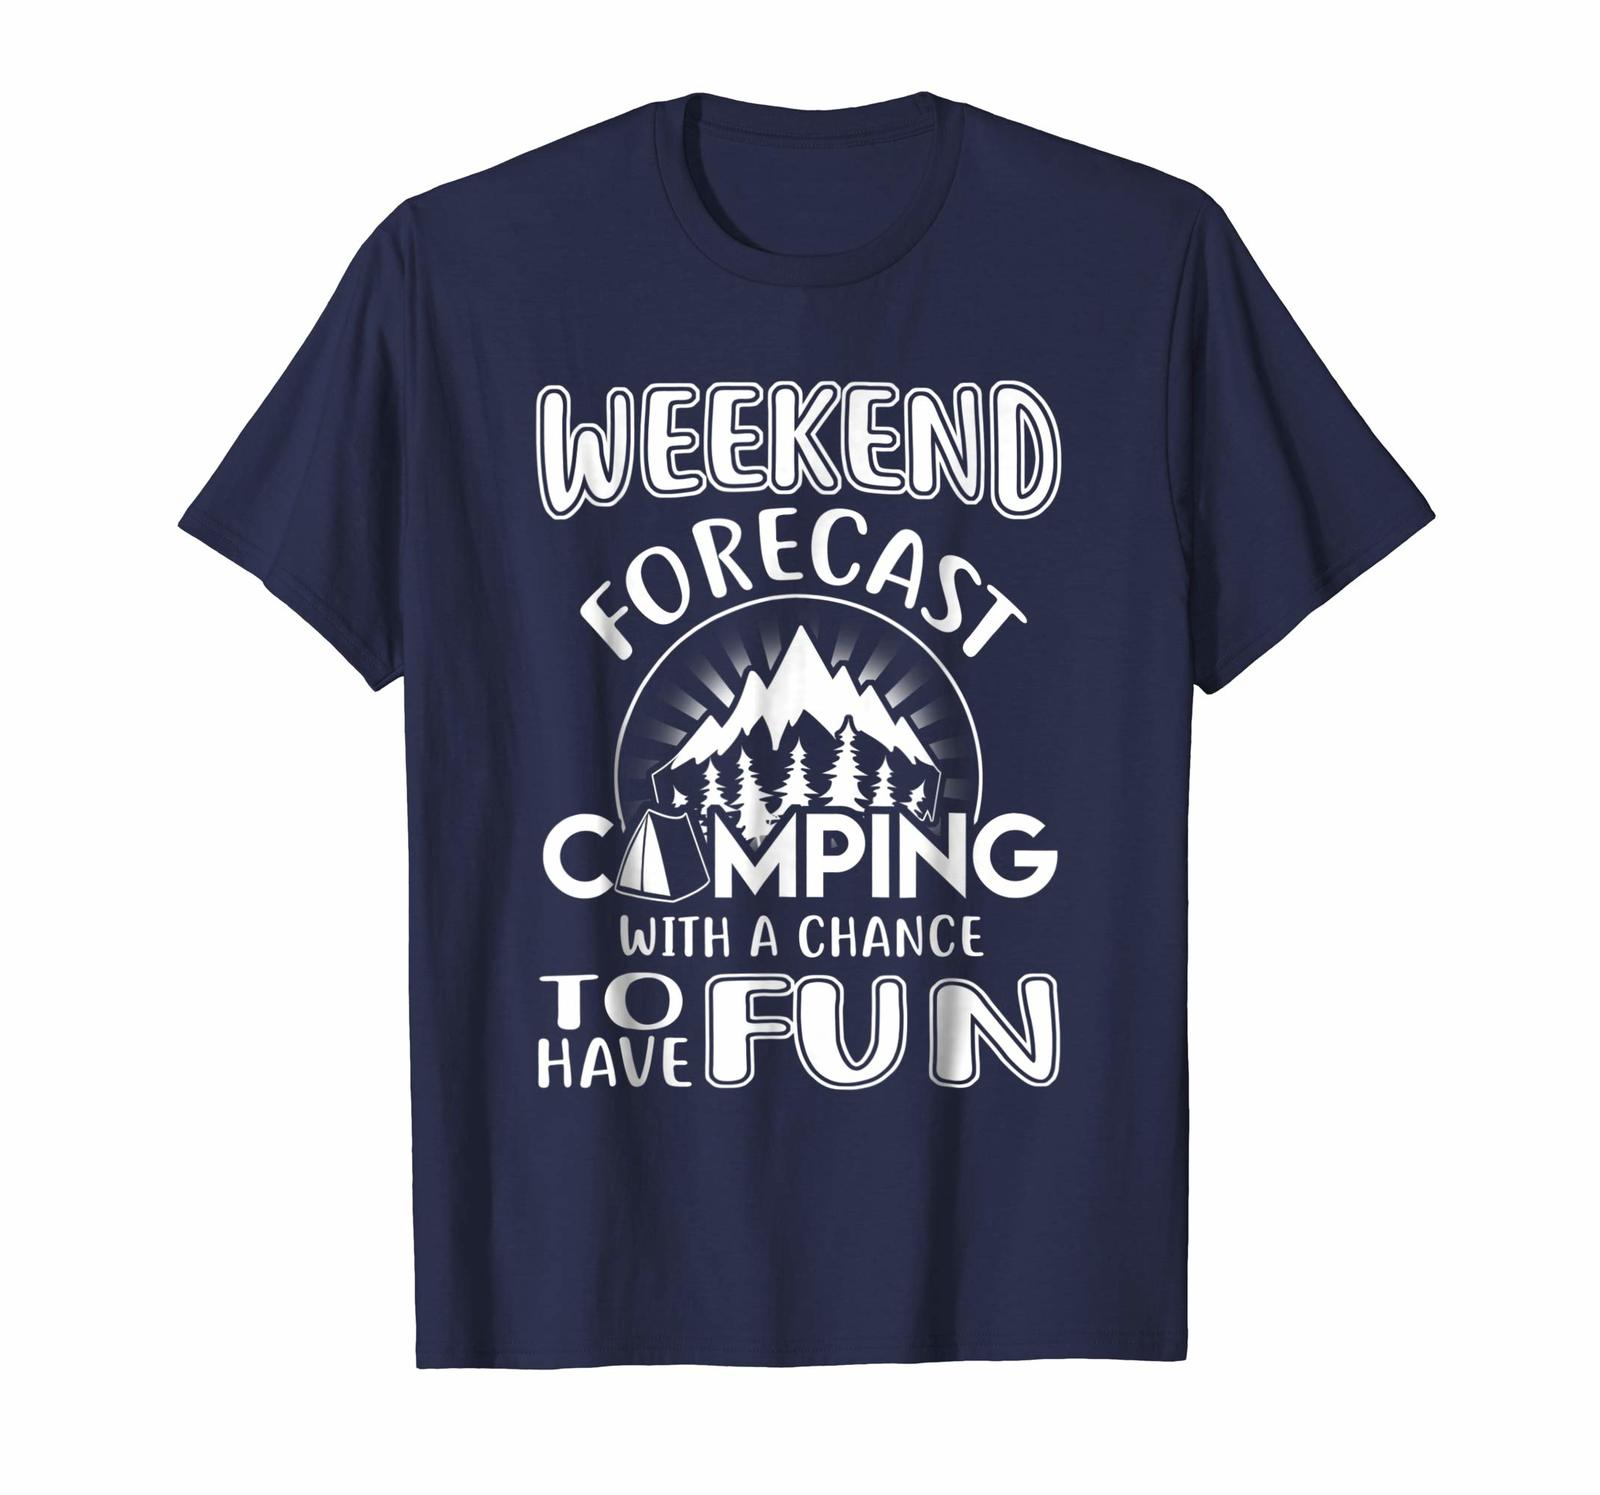 Primary image for Brother Shirts - Weekend forecast camping with a chance to have fun tshirt Men